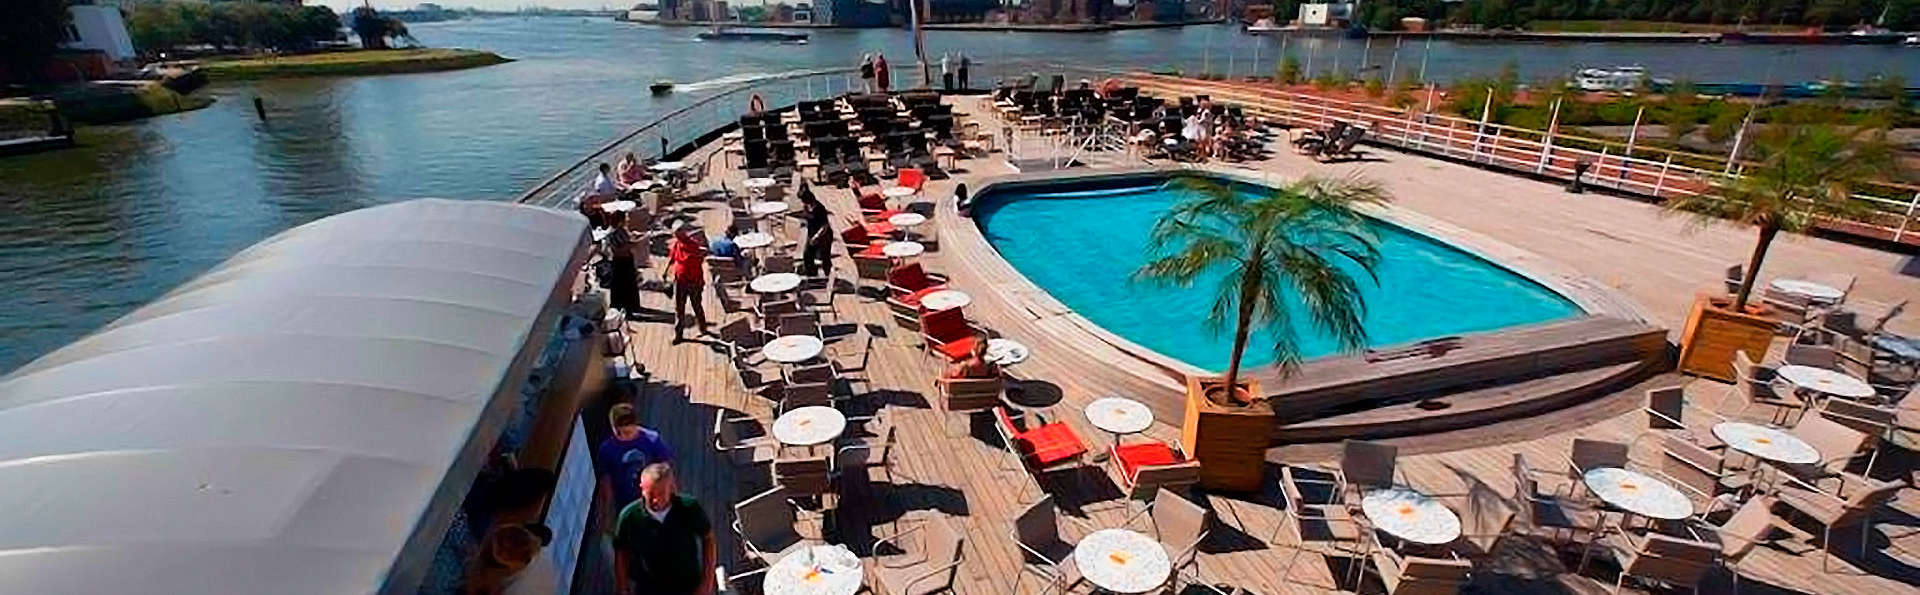 ss Rotterdam Hotel and Restaurants - EDIT_poolboat1.jpg